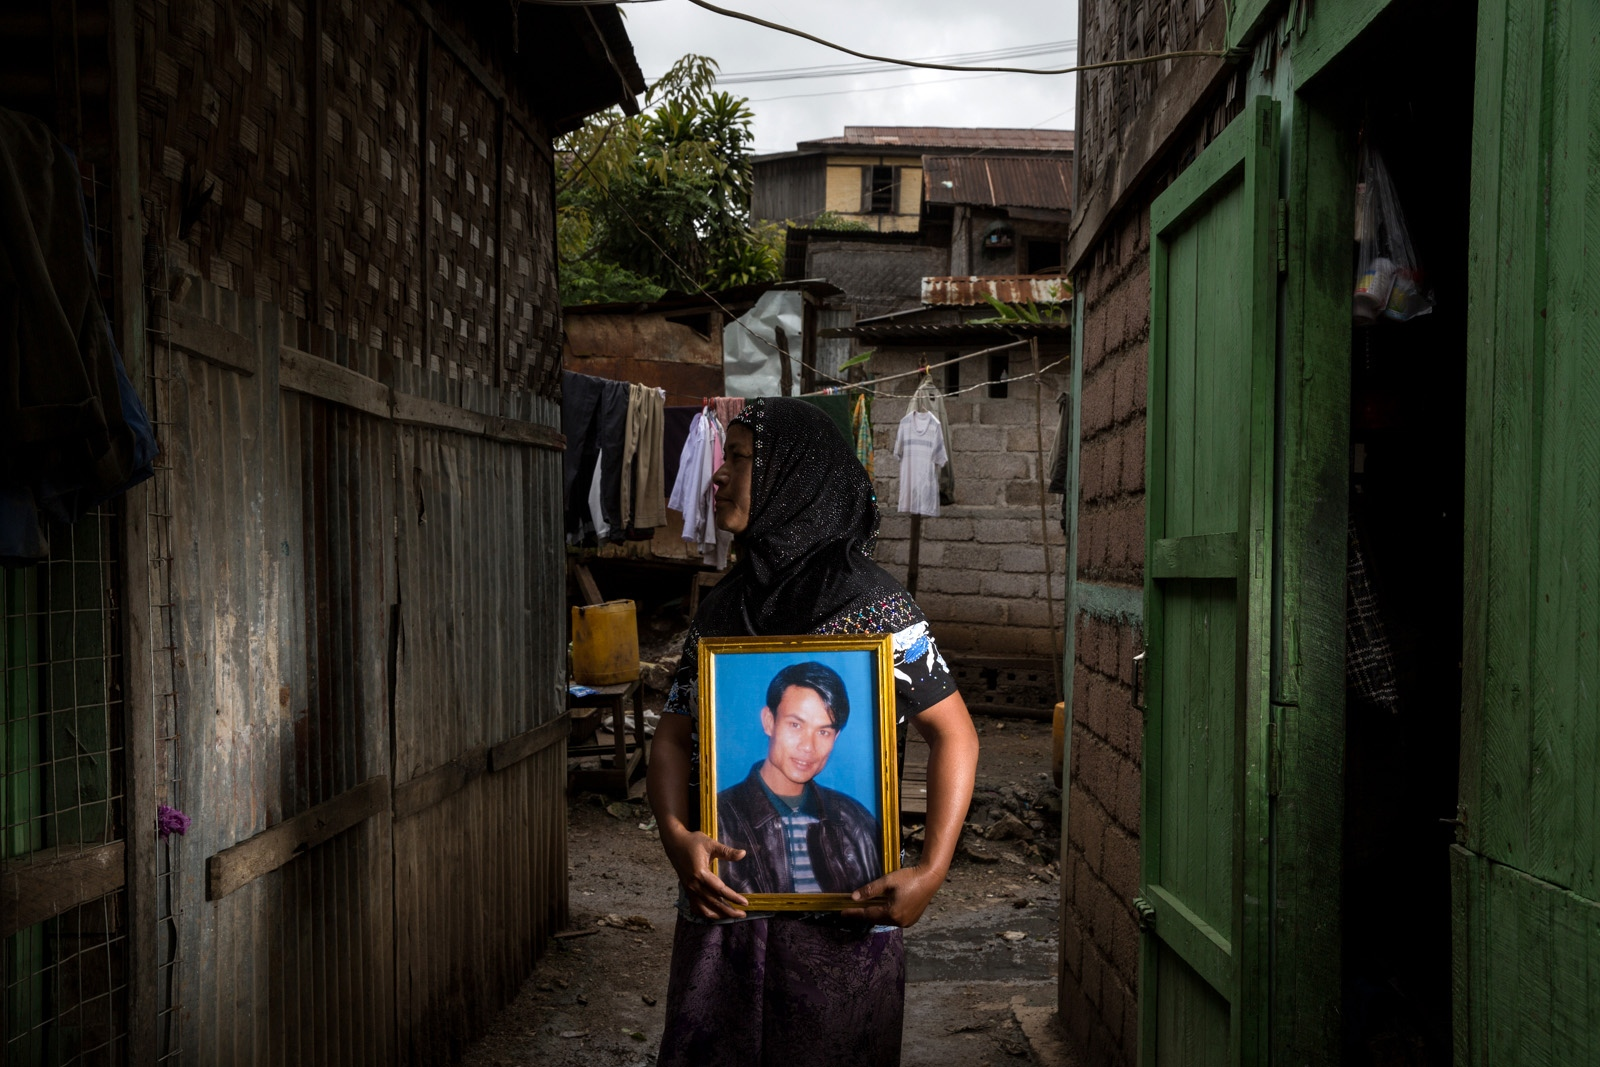 The wife of arbitrarily detained Myant Thu holds his portrait at their family home. She didn't want to show her face for fear of retribution. Myanmar military intelligence arrested Myat Thu, 39, who was traveling to Kunhein, Shan State on August 4, 2014 for the wedding of Aye Aye San and Myo Myint Htun. He was hired to cook for the wedding party.  The Taunggyi District Court sentenced him in a trial that failed to meet fair trial standards to 14 years imprisonment with hard labor under sections 5(J) and 5(L) of the 1950 Emergency Provisions Act.  In October 2016, the Myanmar government repealed the notoriously controversial 1950 Emergency Provisions Act, yet Myat Thu and others remain detained under the now defunct Act.